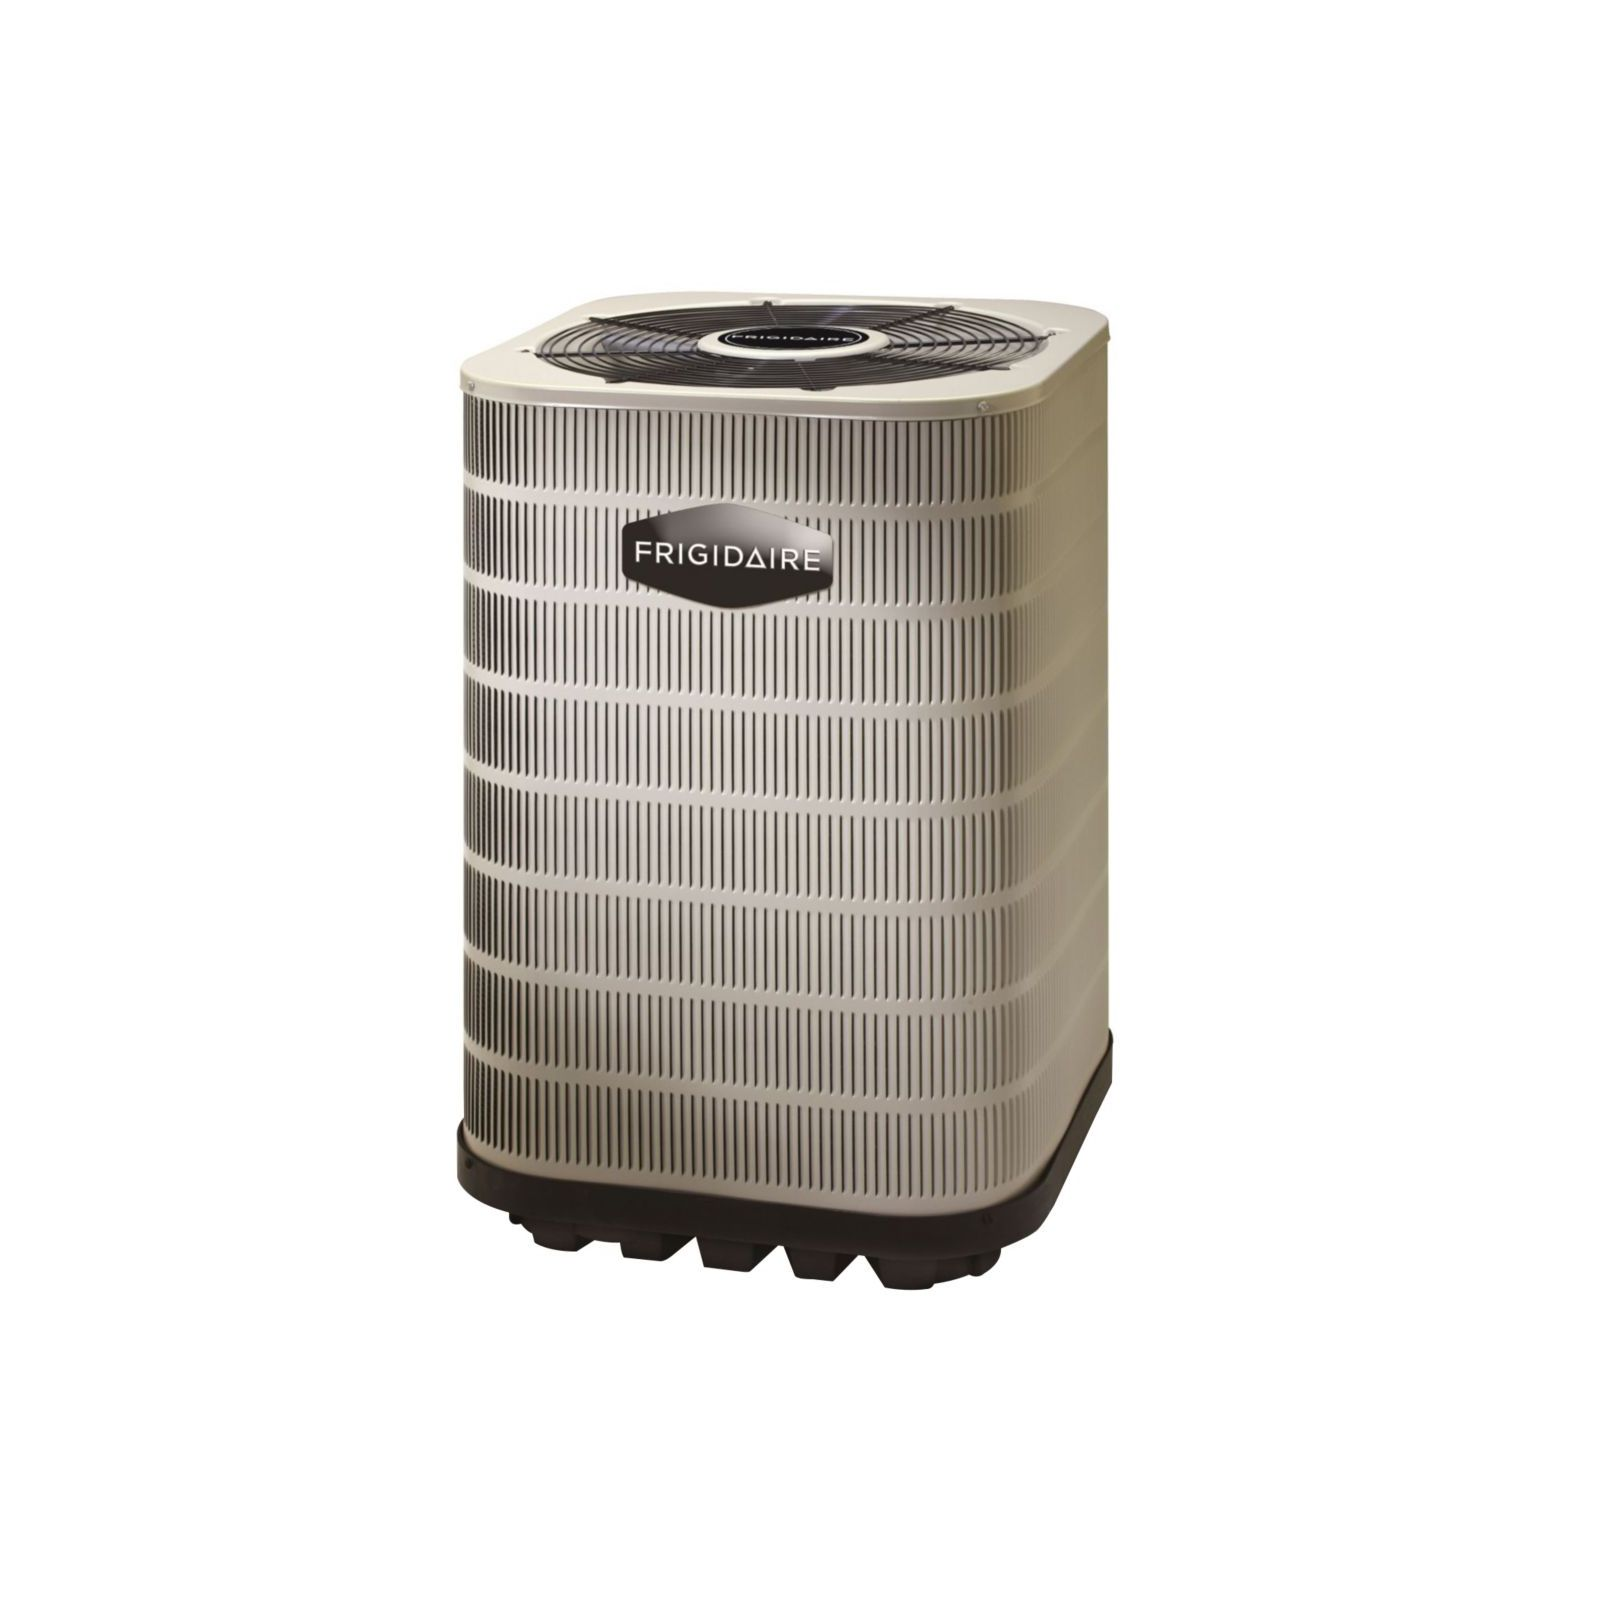 Frigidaire 921983E - ET4BE030KA - 2 1/2 Ton 14 SEER High Efficiency Heat Pump, R410A